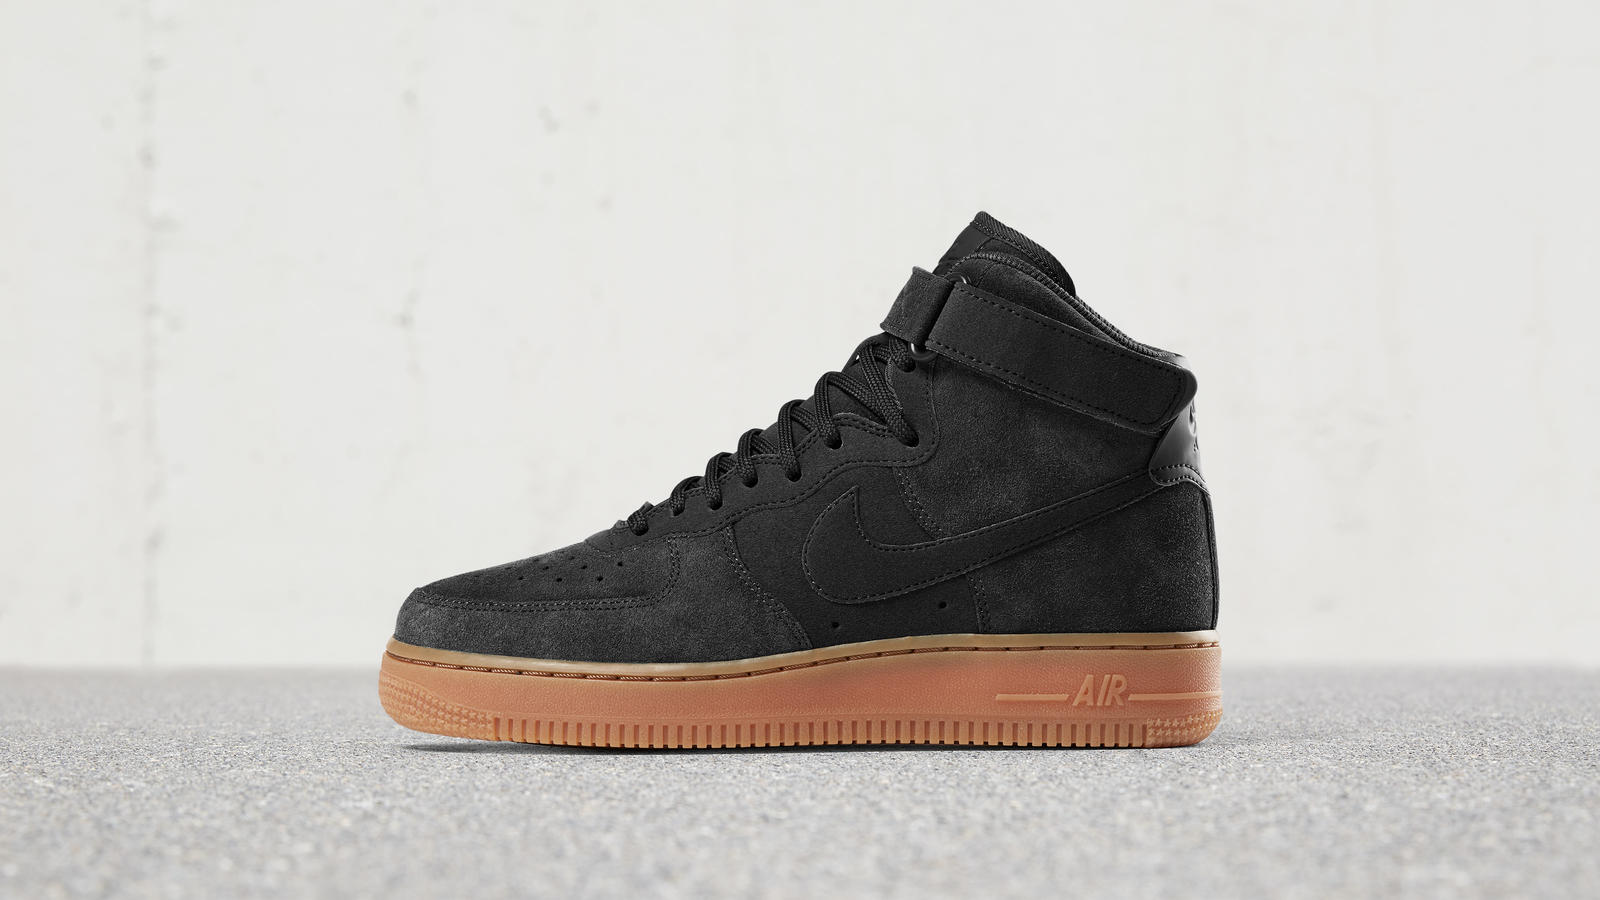 170607 footwear af1 high blk 0224 hd 1600